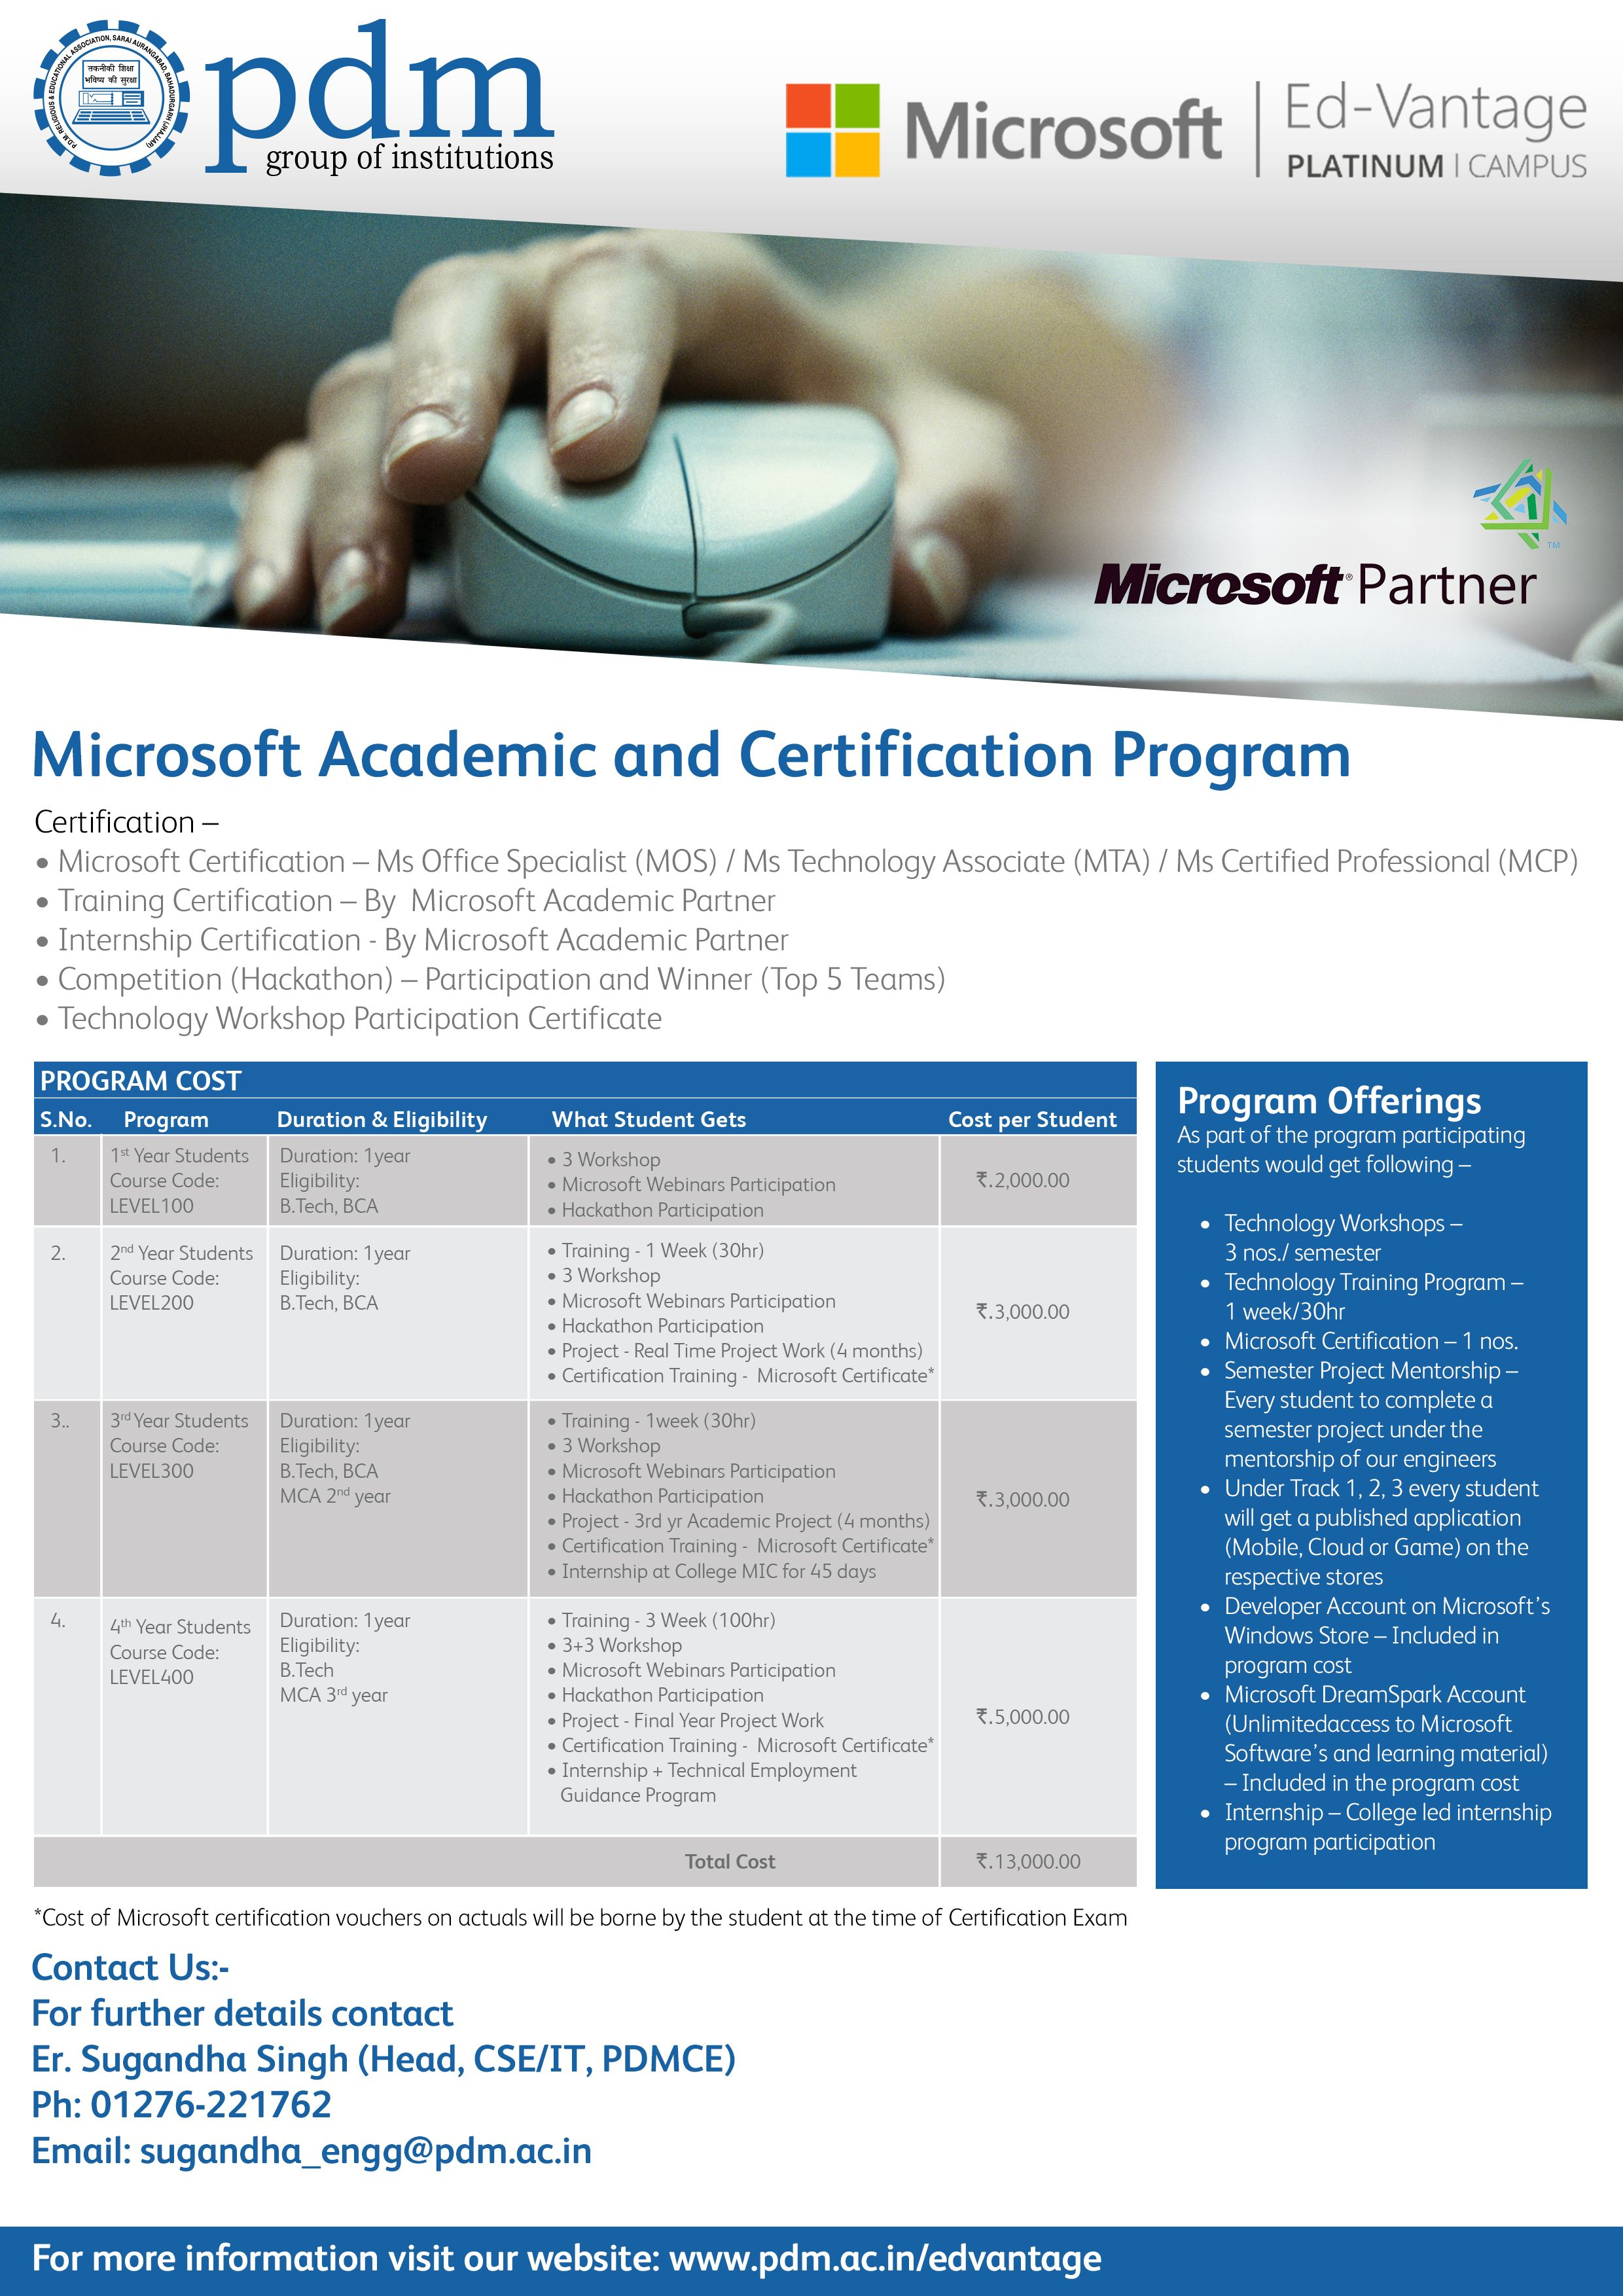 Pdm Group Of Institutions Microsoft Academic And Certification